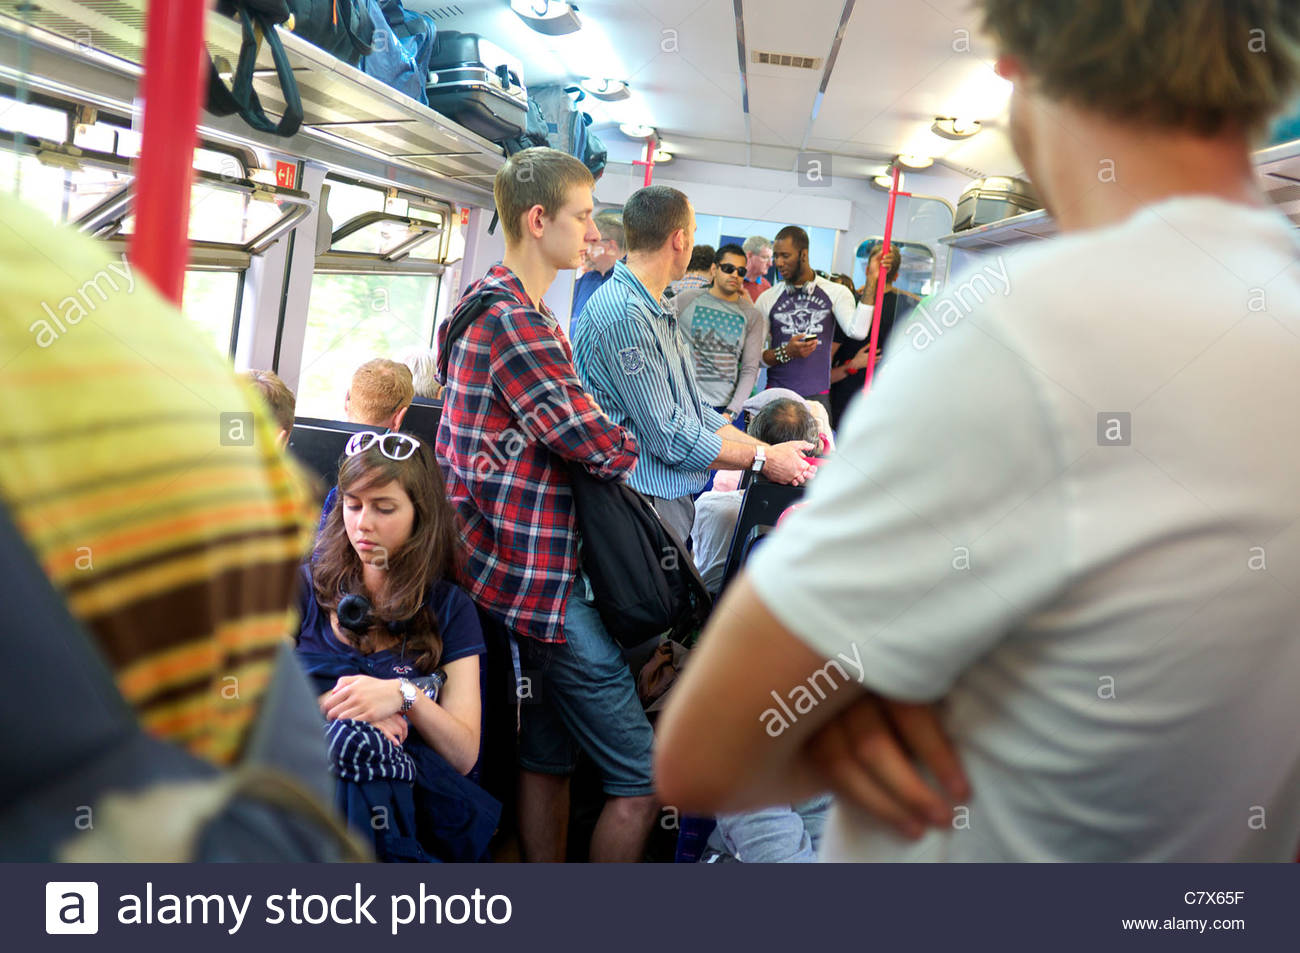 British railway carriage overcrowded with young people during a summer's journey, in Devon, UK. Stock Photo